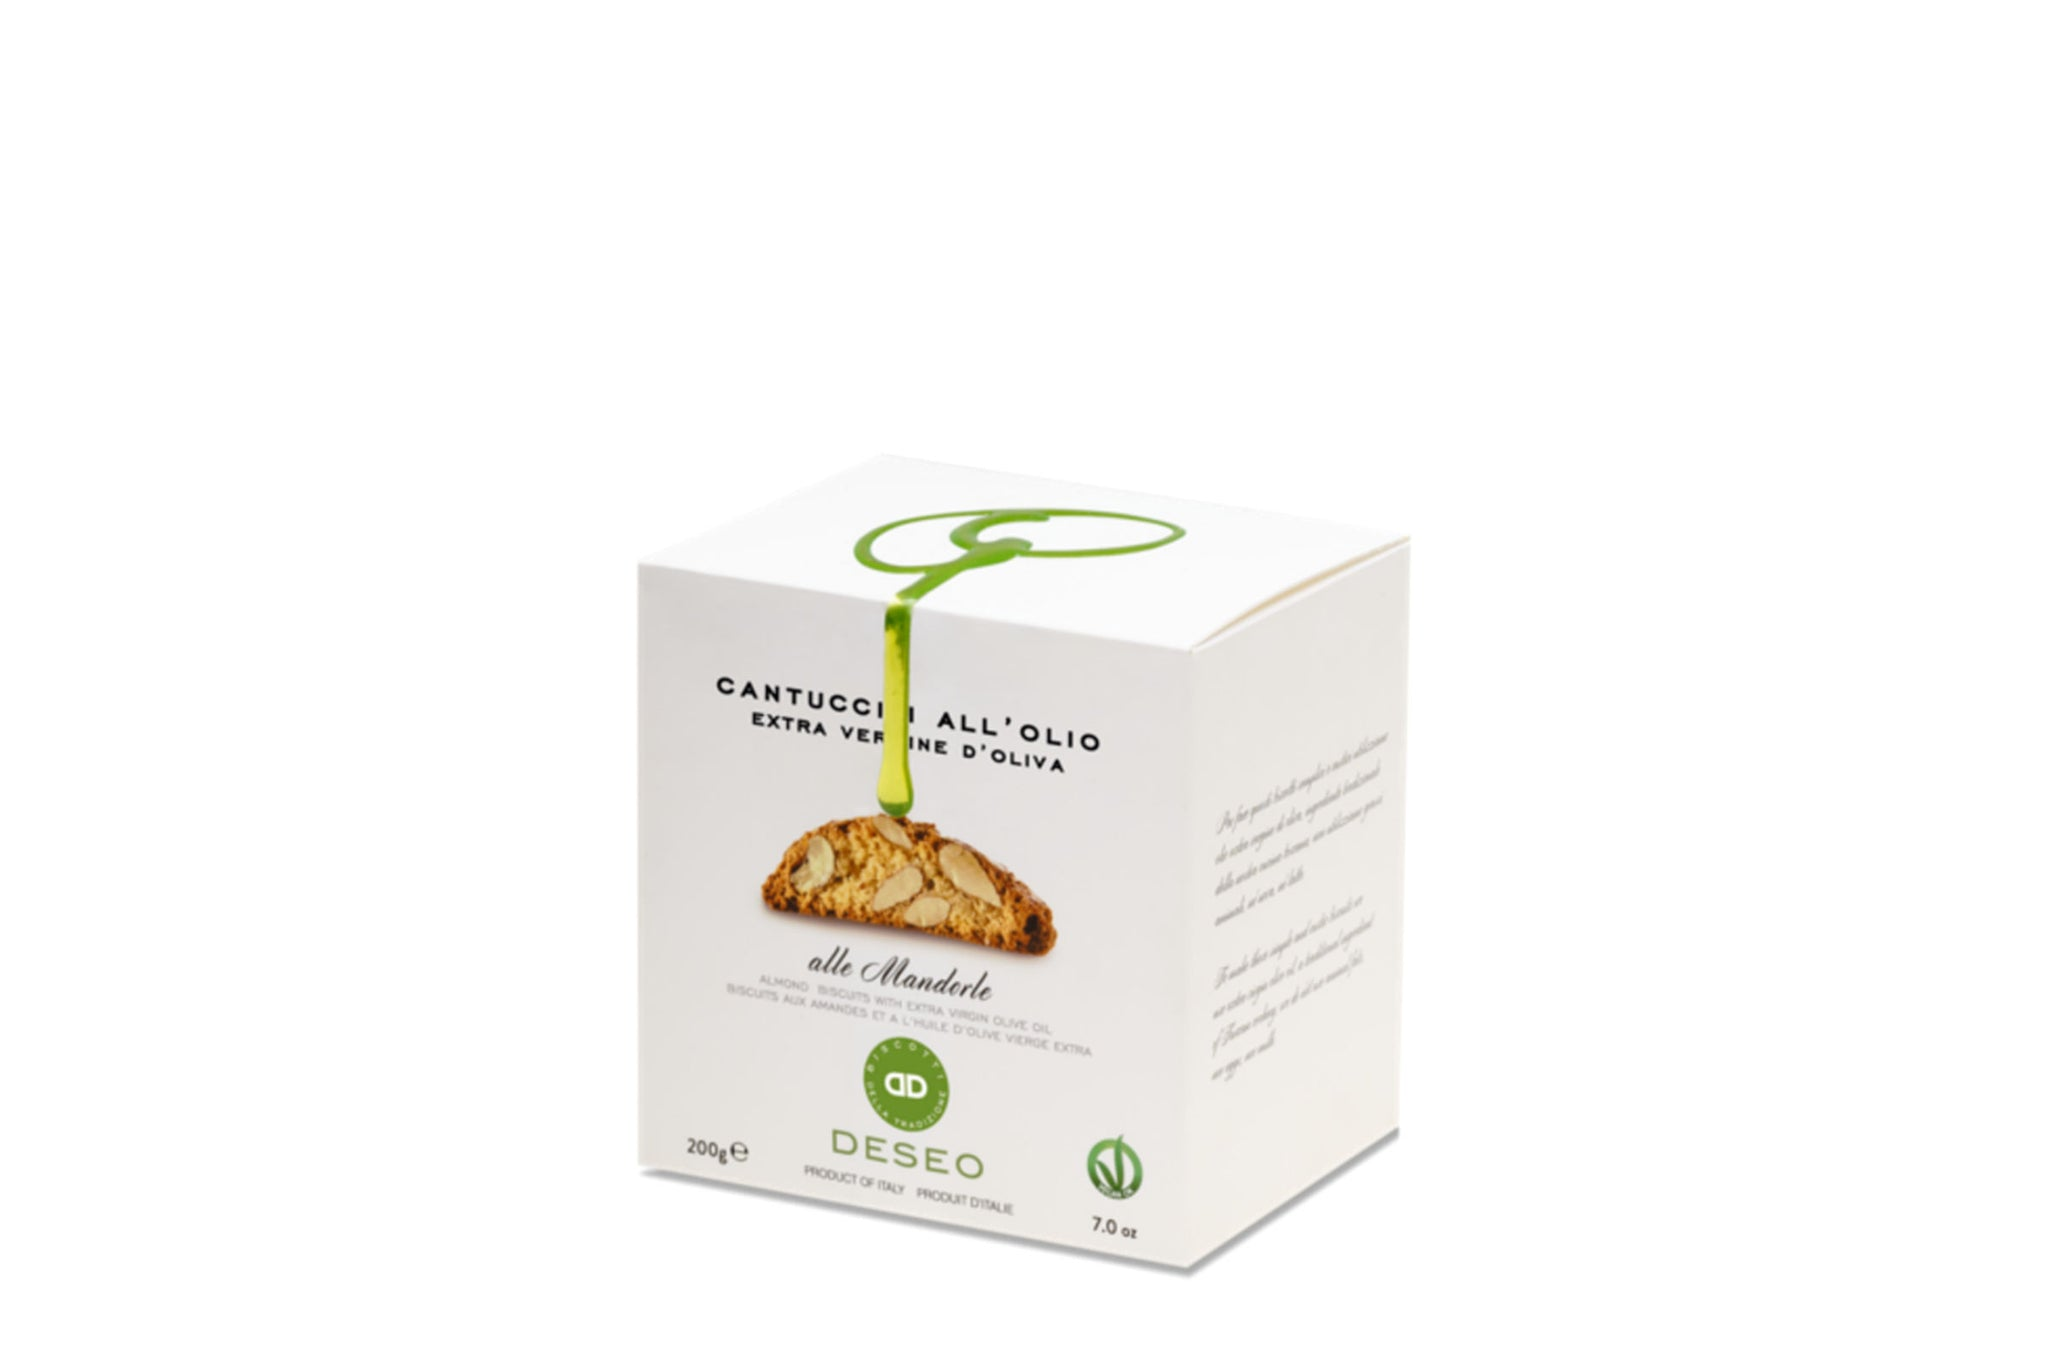 Deseo Vegan Cantuccini w/ Extra Virgin Olive Oil 160g Dairy Free Biscuits Shop the Red Beetle